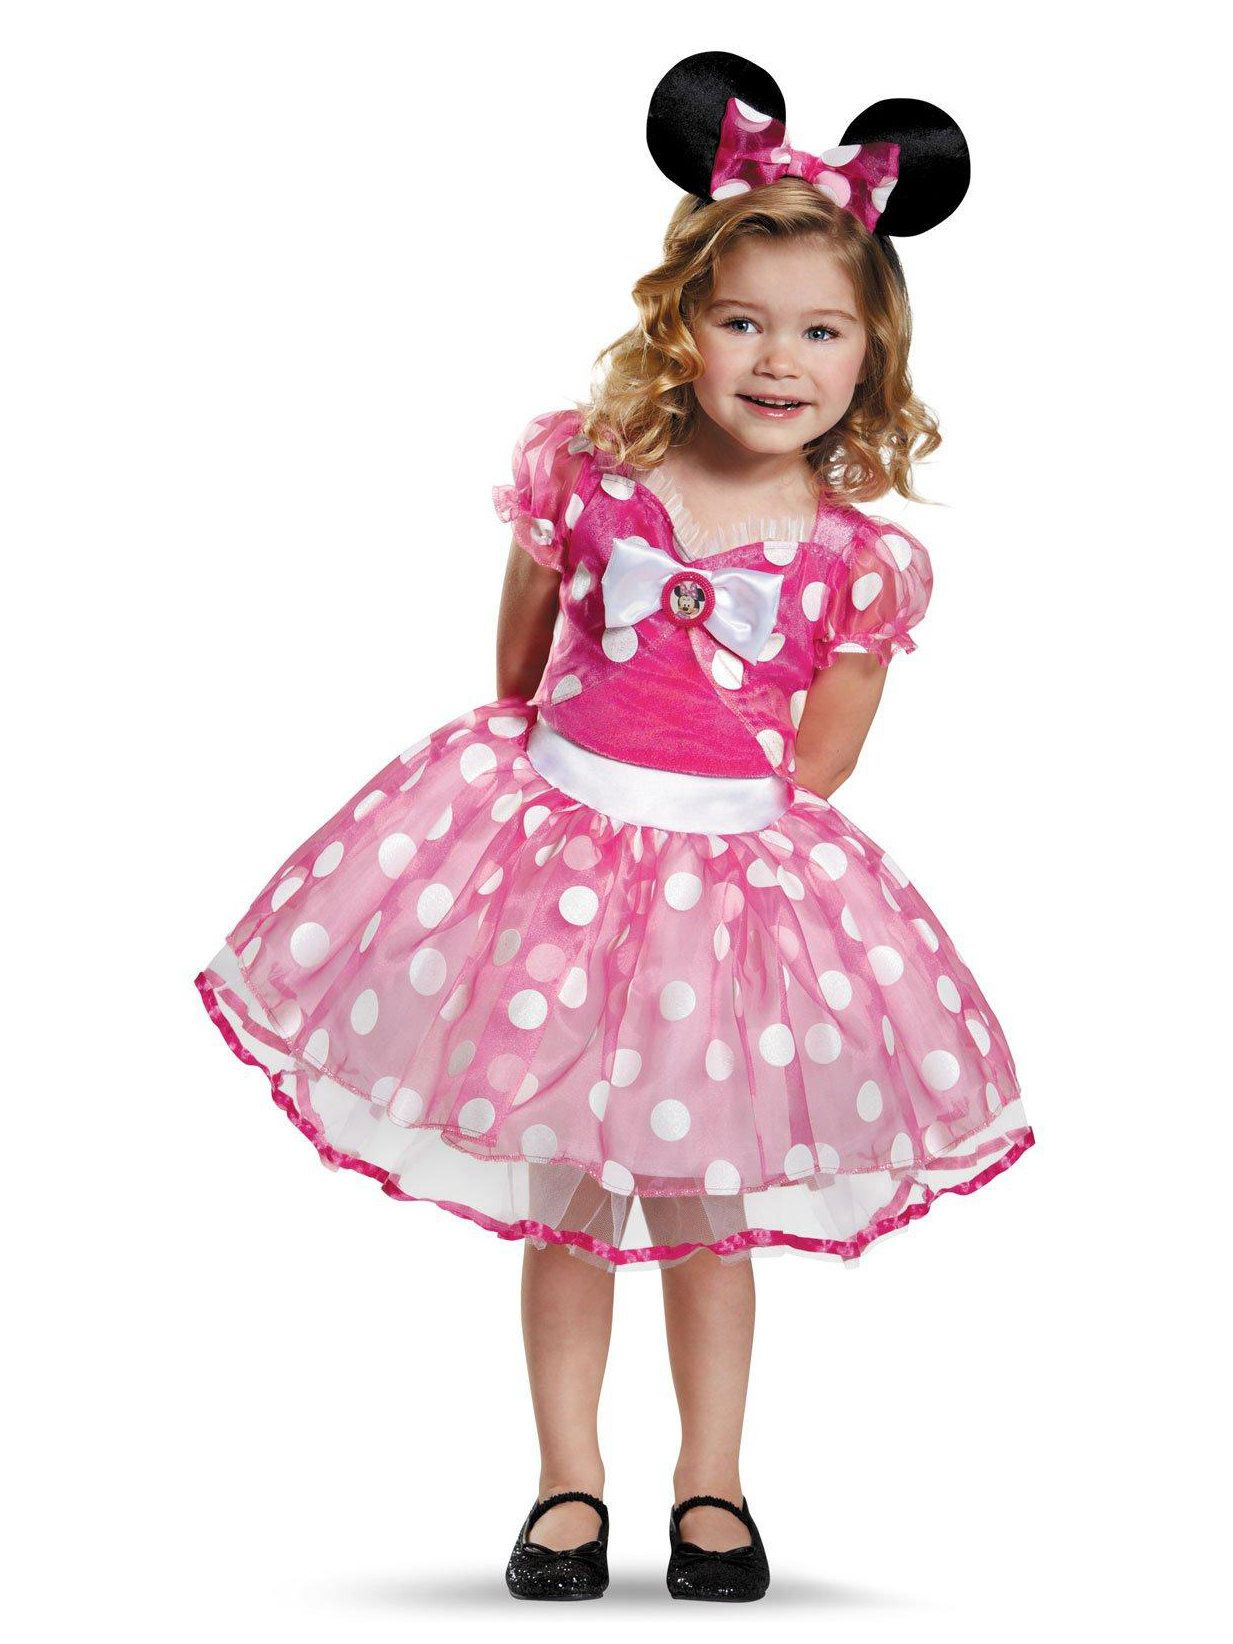 Pink Minnie Mouse Deluxe Tutu Costume For Toddlers  sc 1 st  Wholesale Halloween Costumes & Pink Minnie Mouse Deluxe Tutu Costume For Toddlers | Wholesale ...